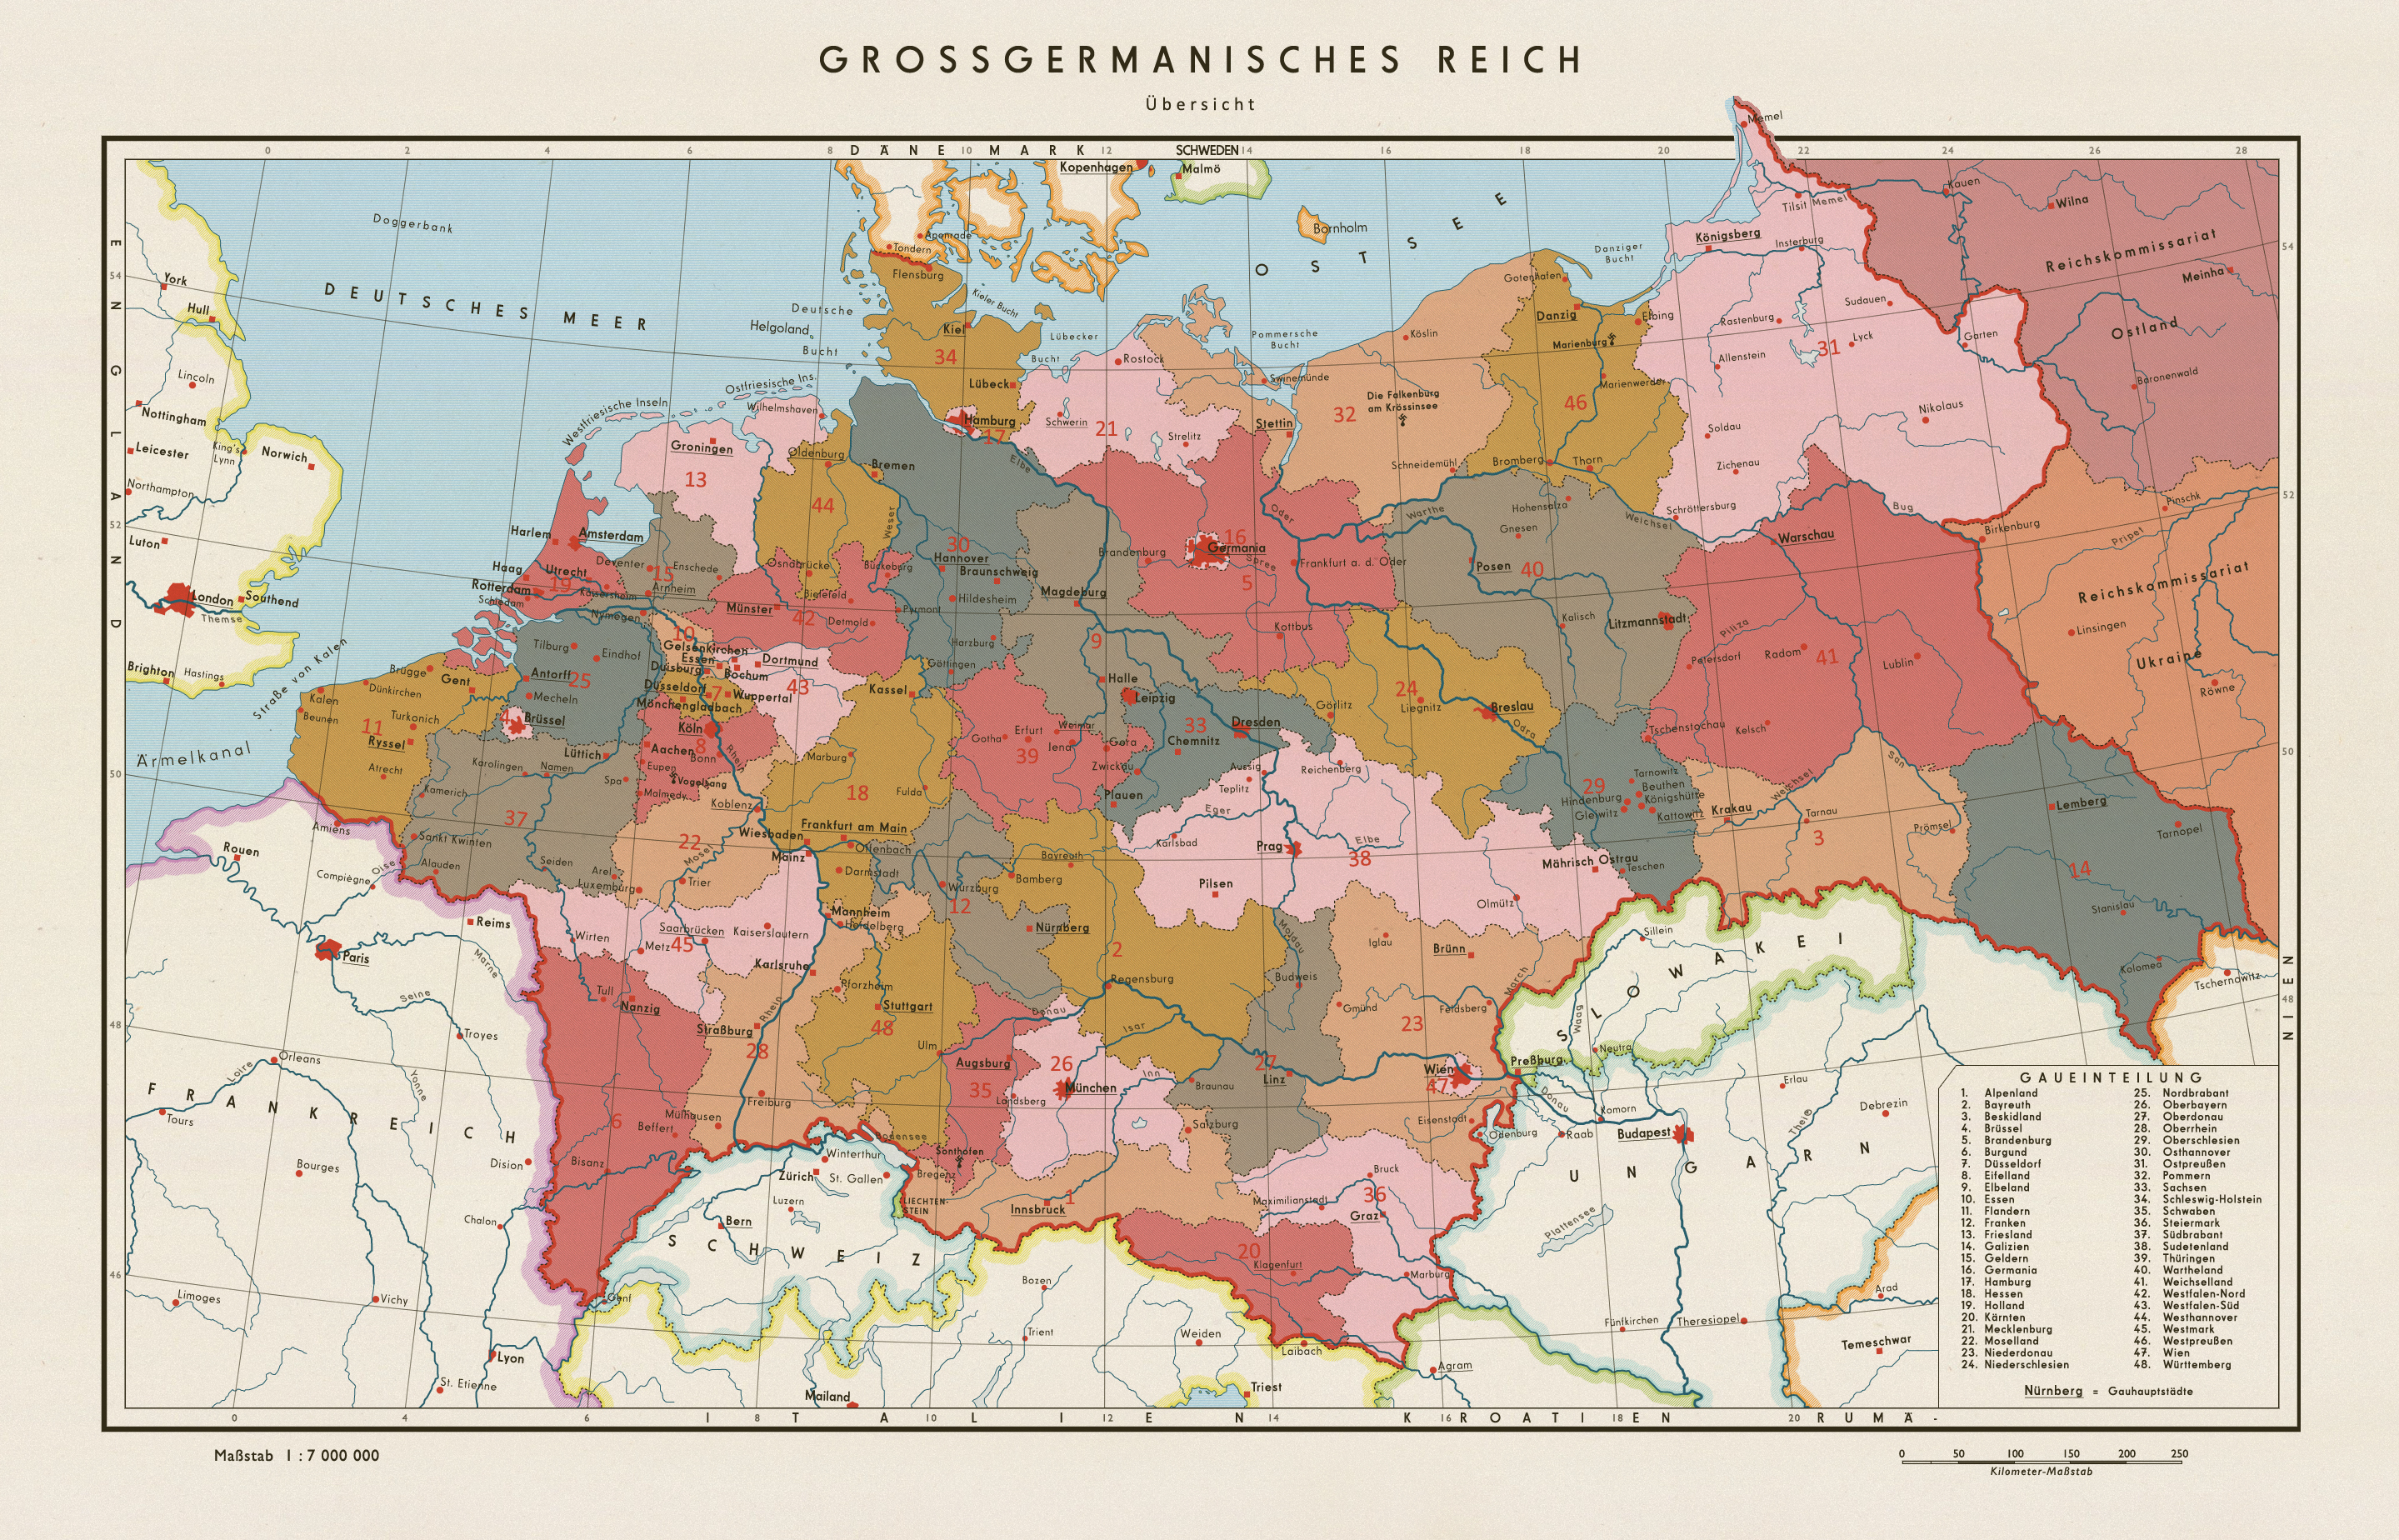 Map Of Germany During World War 2.A Map Of Post World War Ii Germany In A Scenario Where The Nazis Won